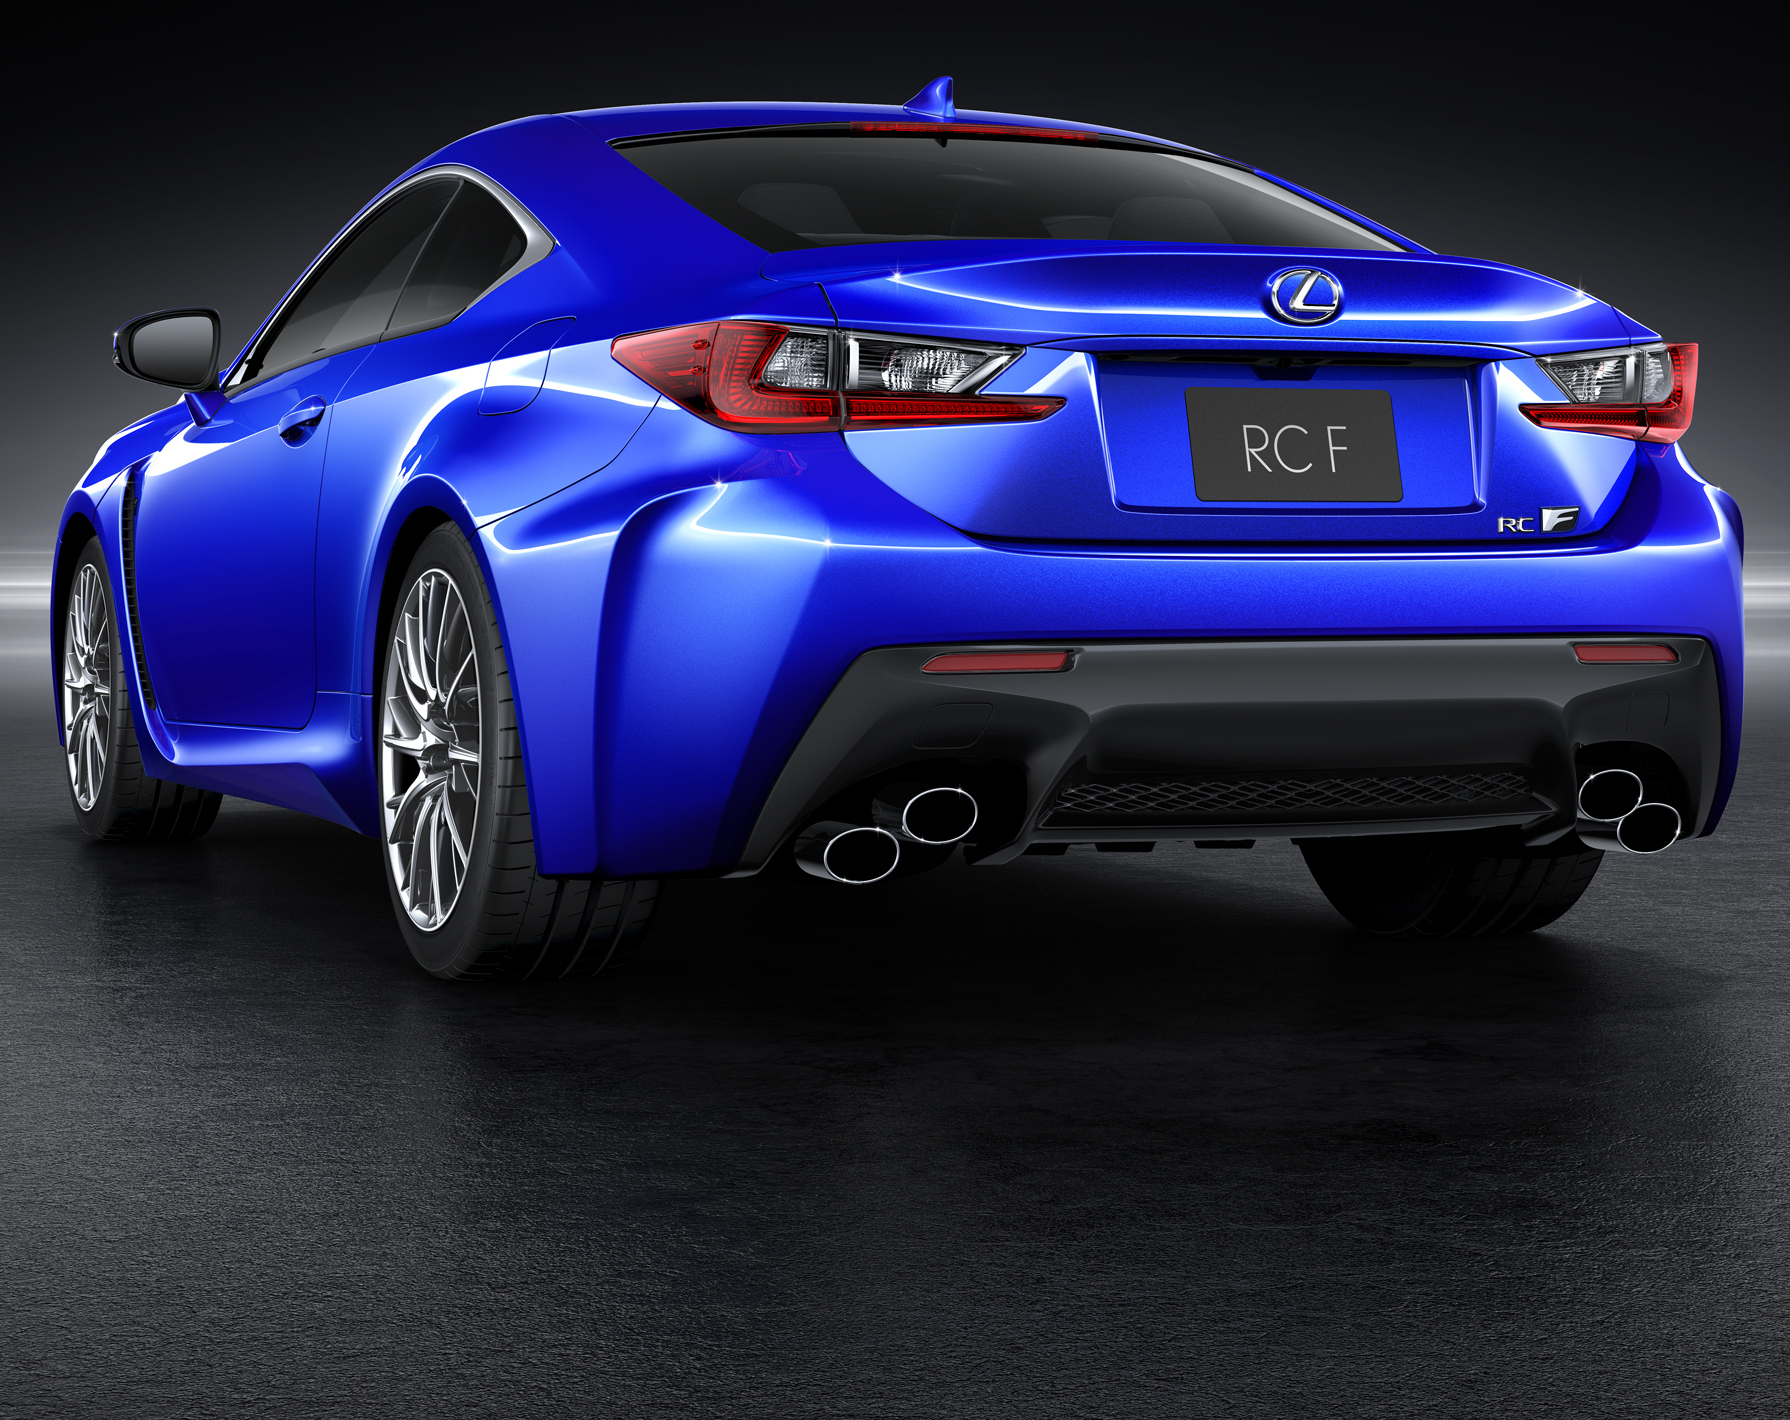 lexus rc malaysian specs prices revealed on website. Black Bedroom Furniture Sets. Home Design Ideas